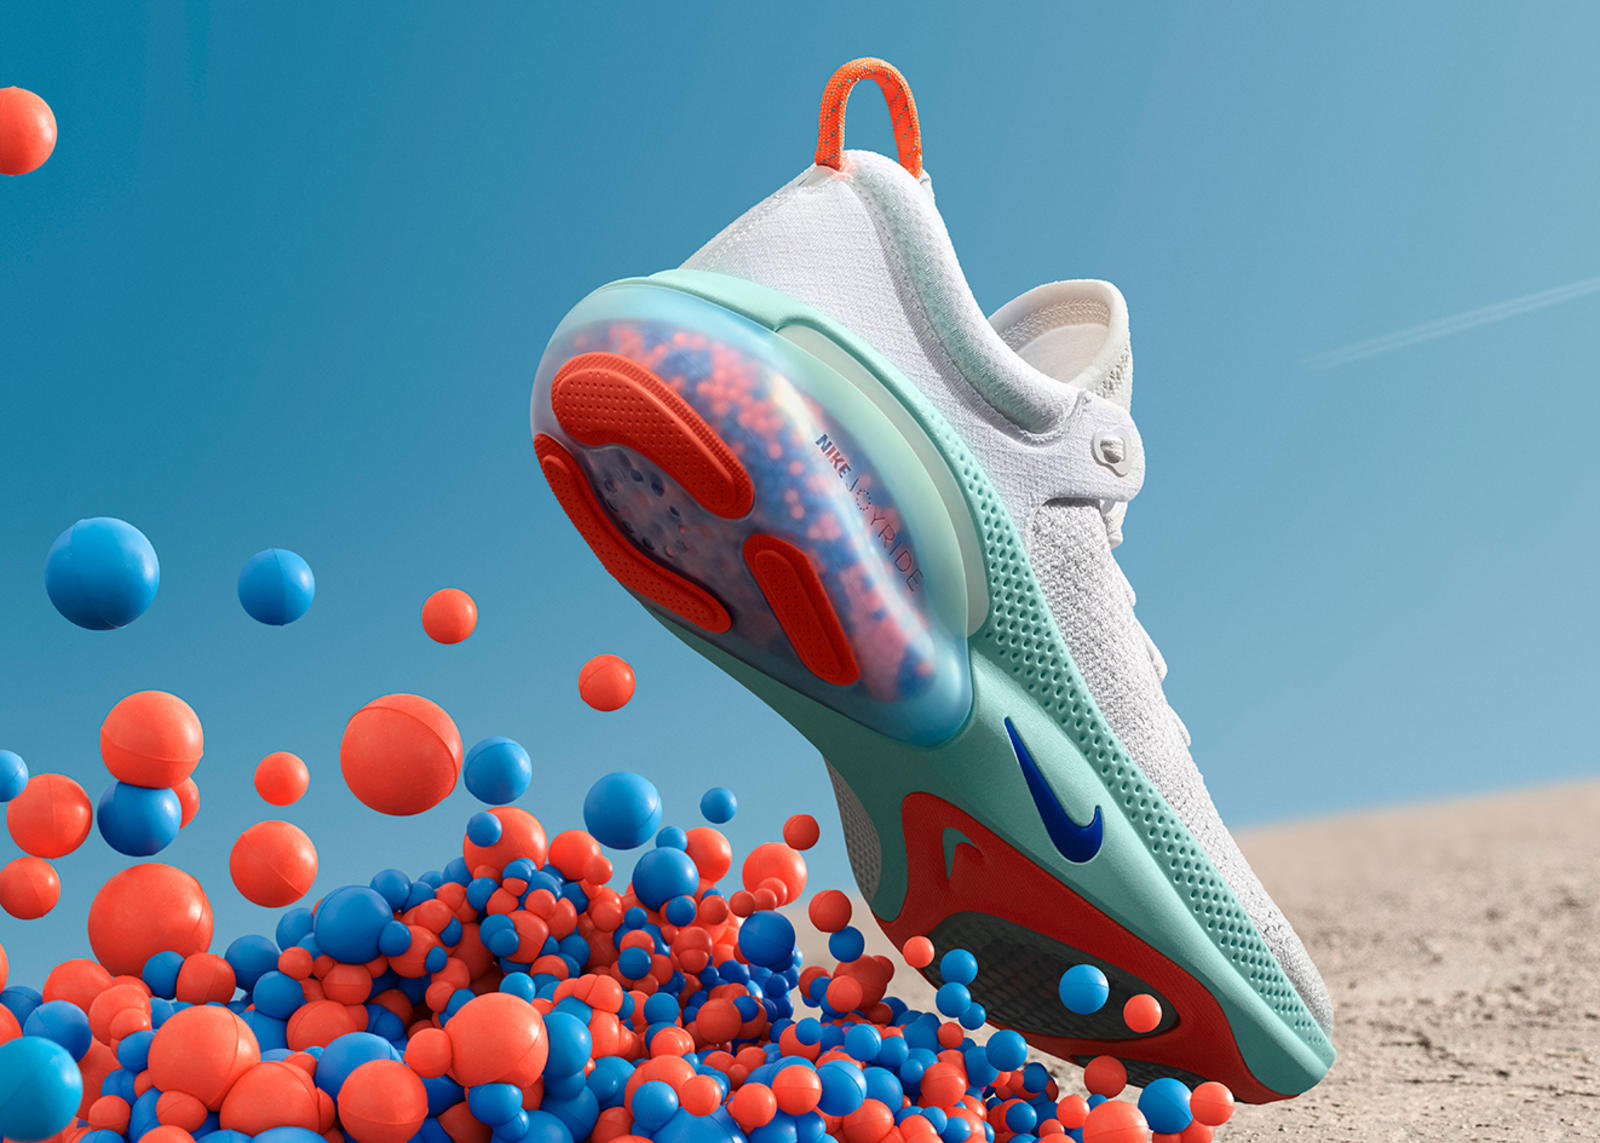 Nike Sparks Controversy With 'Plastic Bead' Shoes | GearJunkie